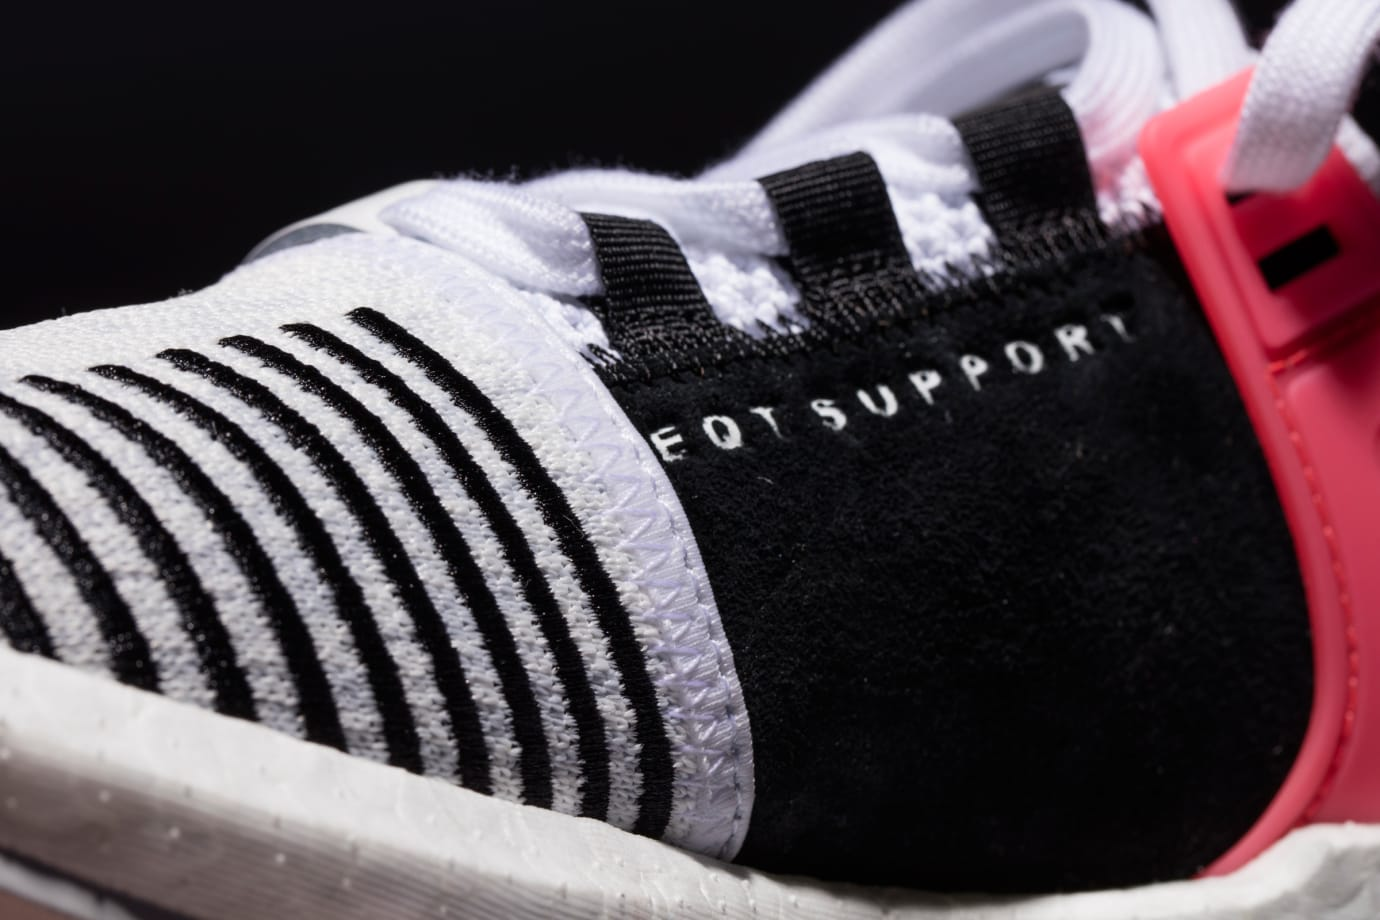 Adidas EQT Support 93-17 White Black Turbo Red Medial